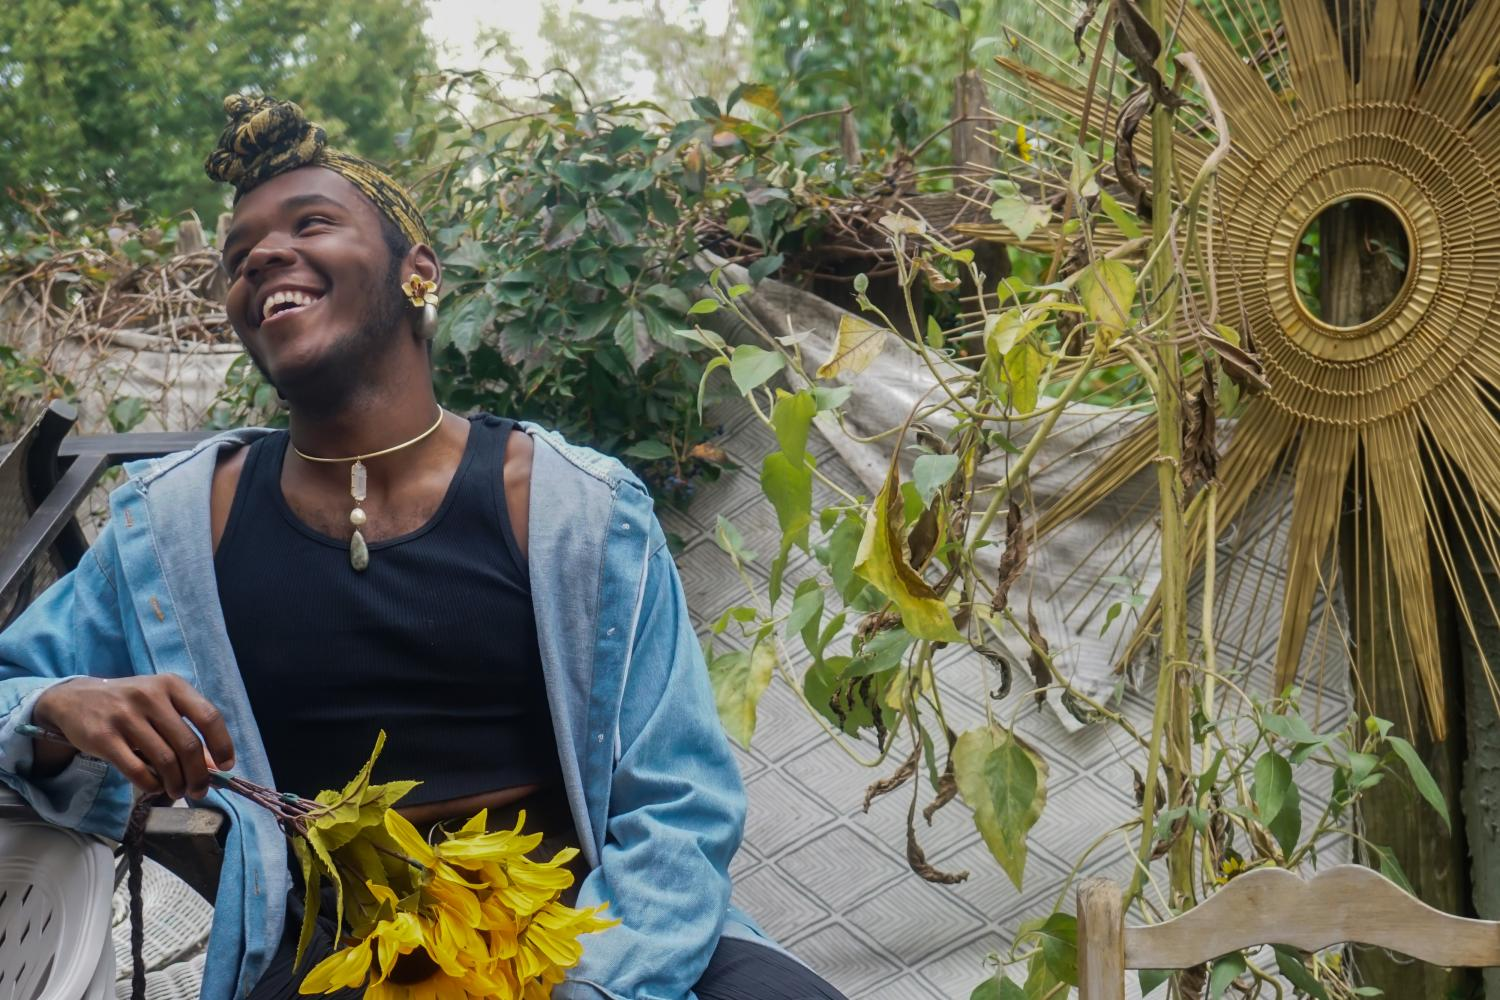 The Artist Vitche-boul Ra sits on an outdoor planter, laughing and holding s bunch of sunflowers. Ra is wearing a black jumpsuit, headscarf, light blue open jacket, and silver jewelry.